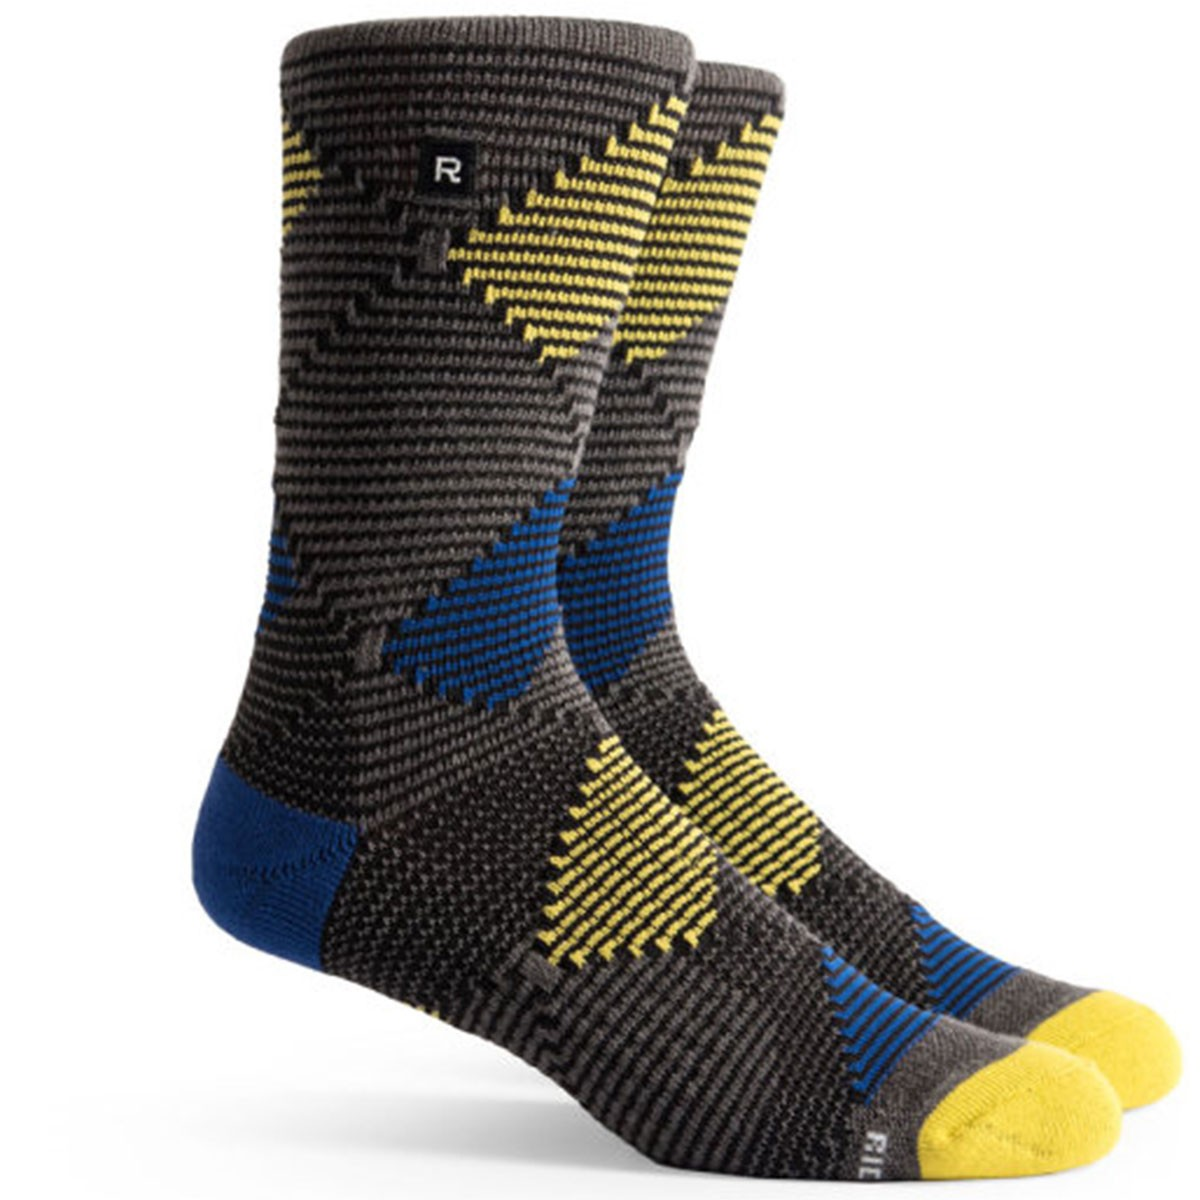 Richer Poorer Optic Argyle Athletic Socks - Charcoal